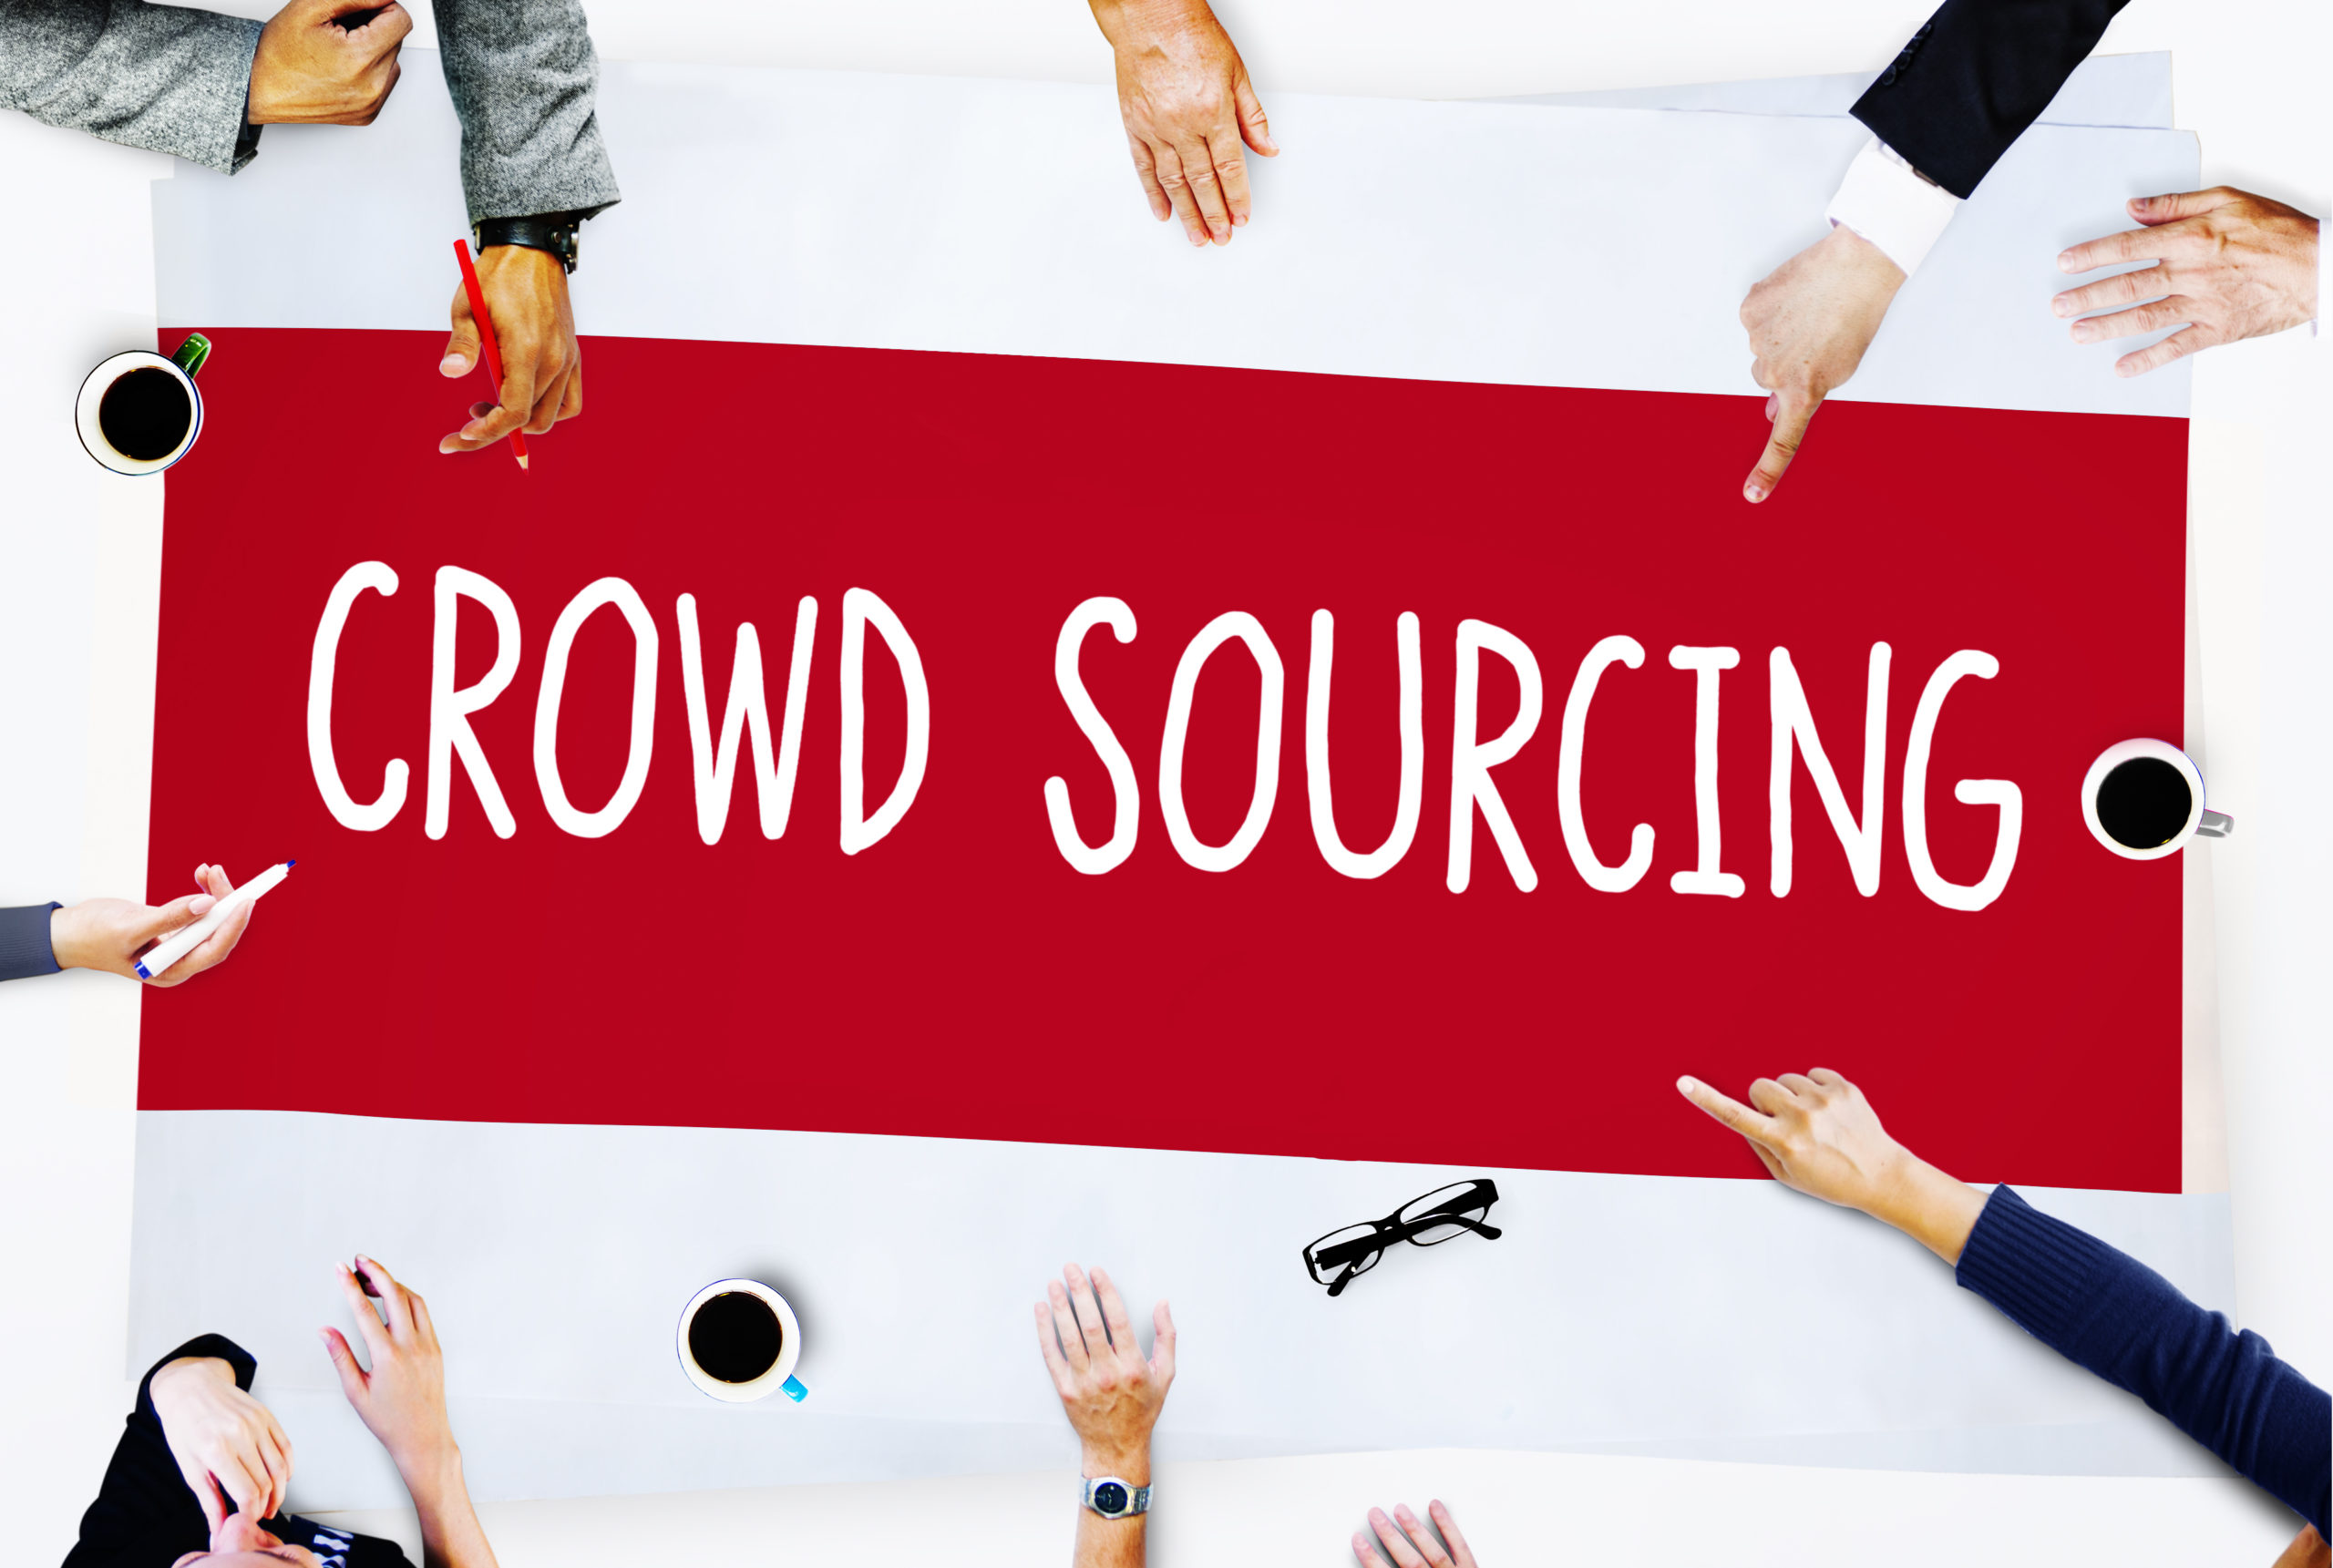 Will Crowdsourcing Make Agencies Obsolete?